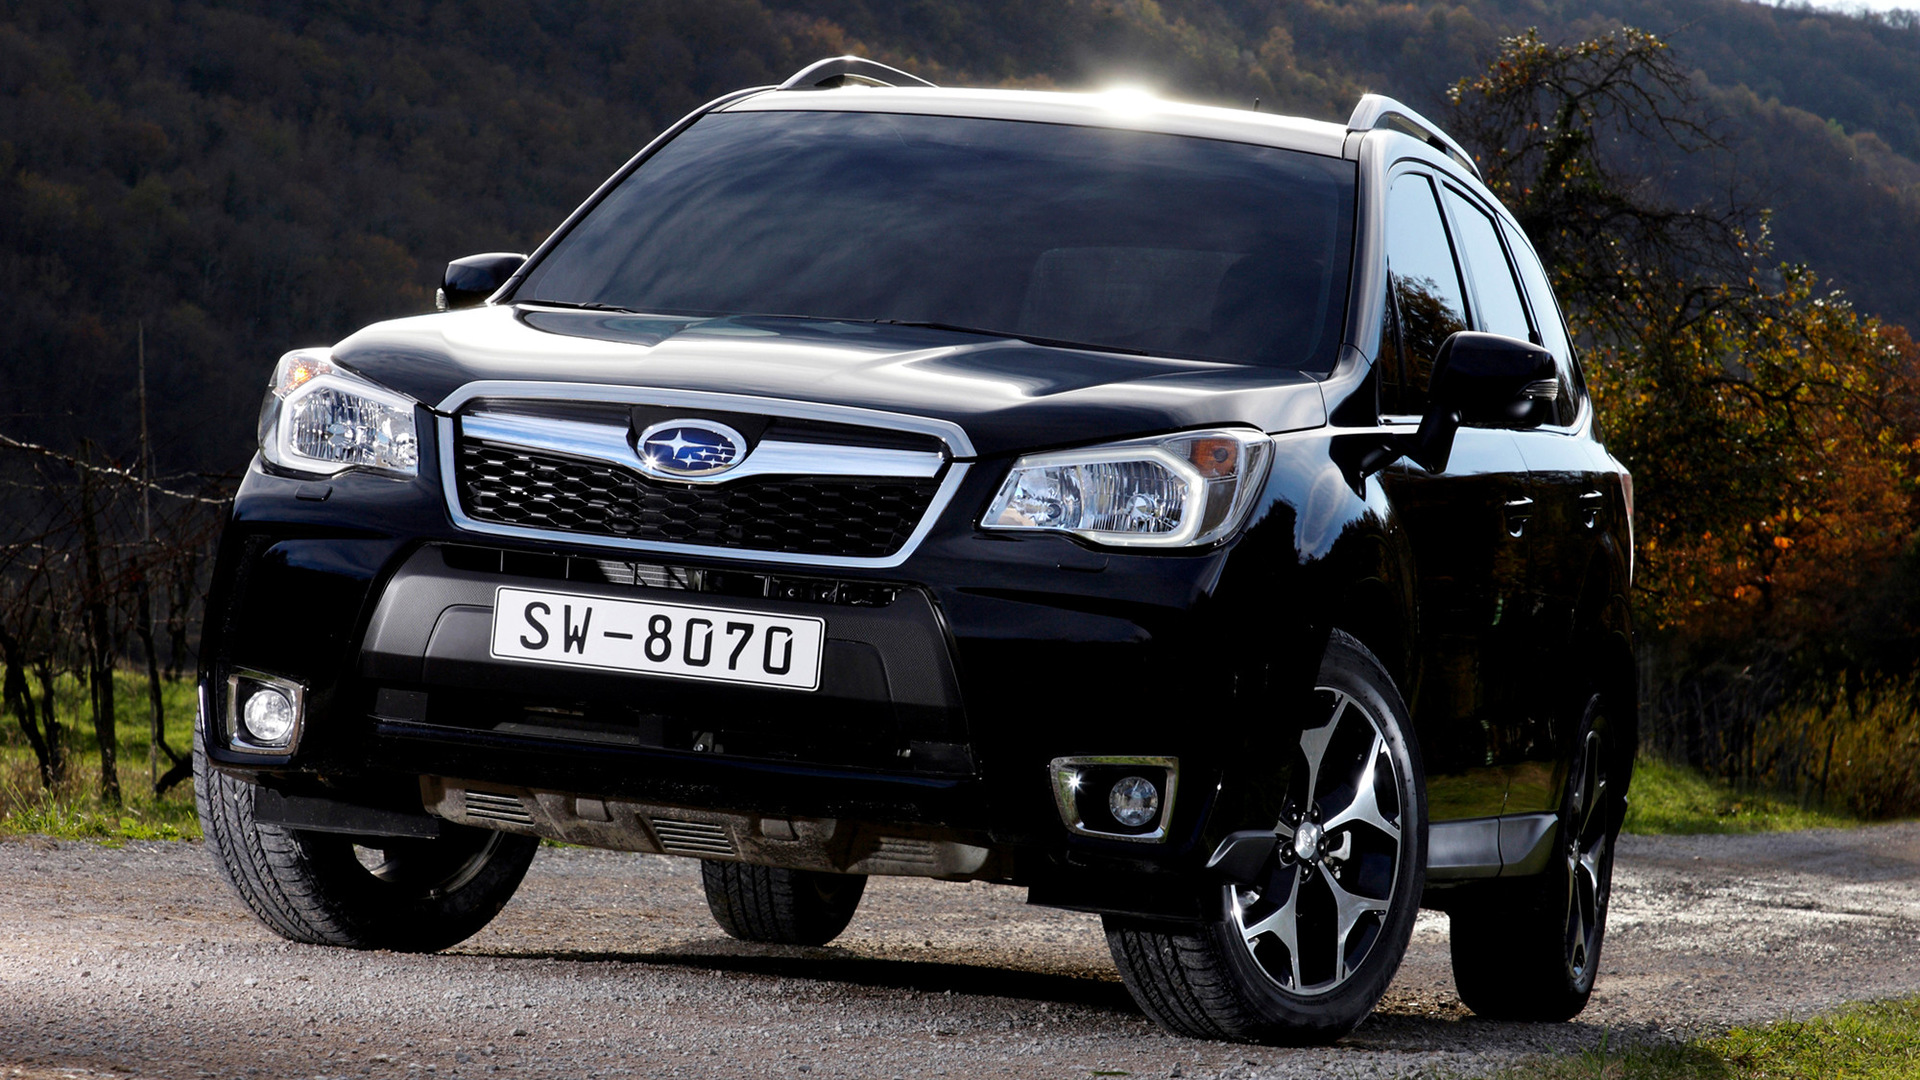 2012 subaru forester 2 0xt wallpapers and hd images - 2 0 wallpaper ...